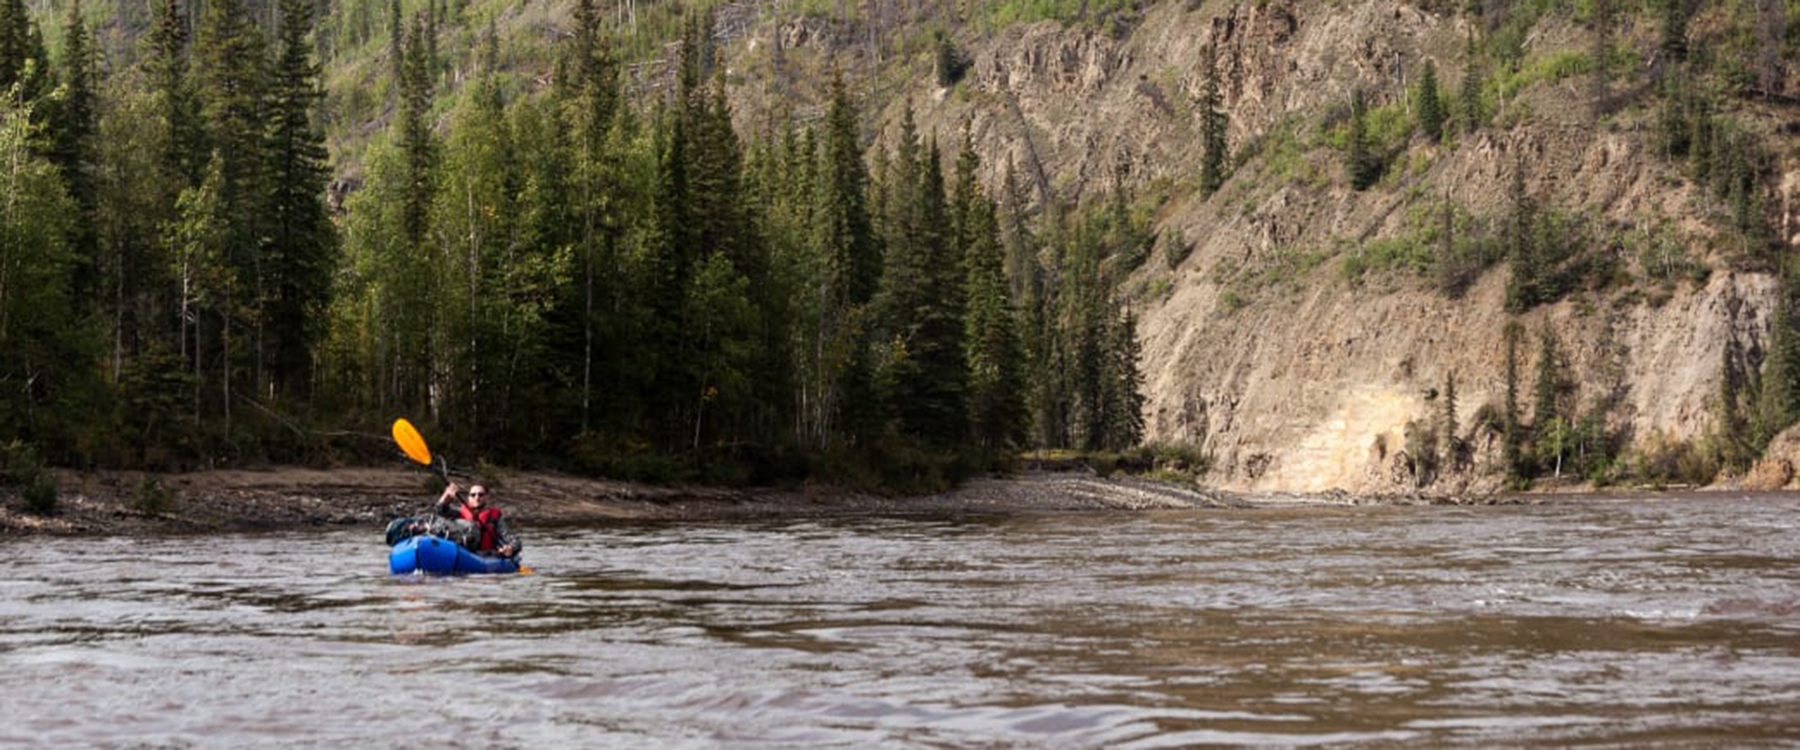 6 Tips for Planning the Perfect Overnight Paddling Trip